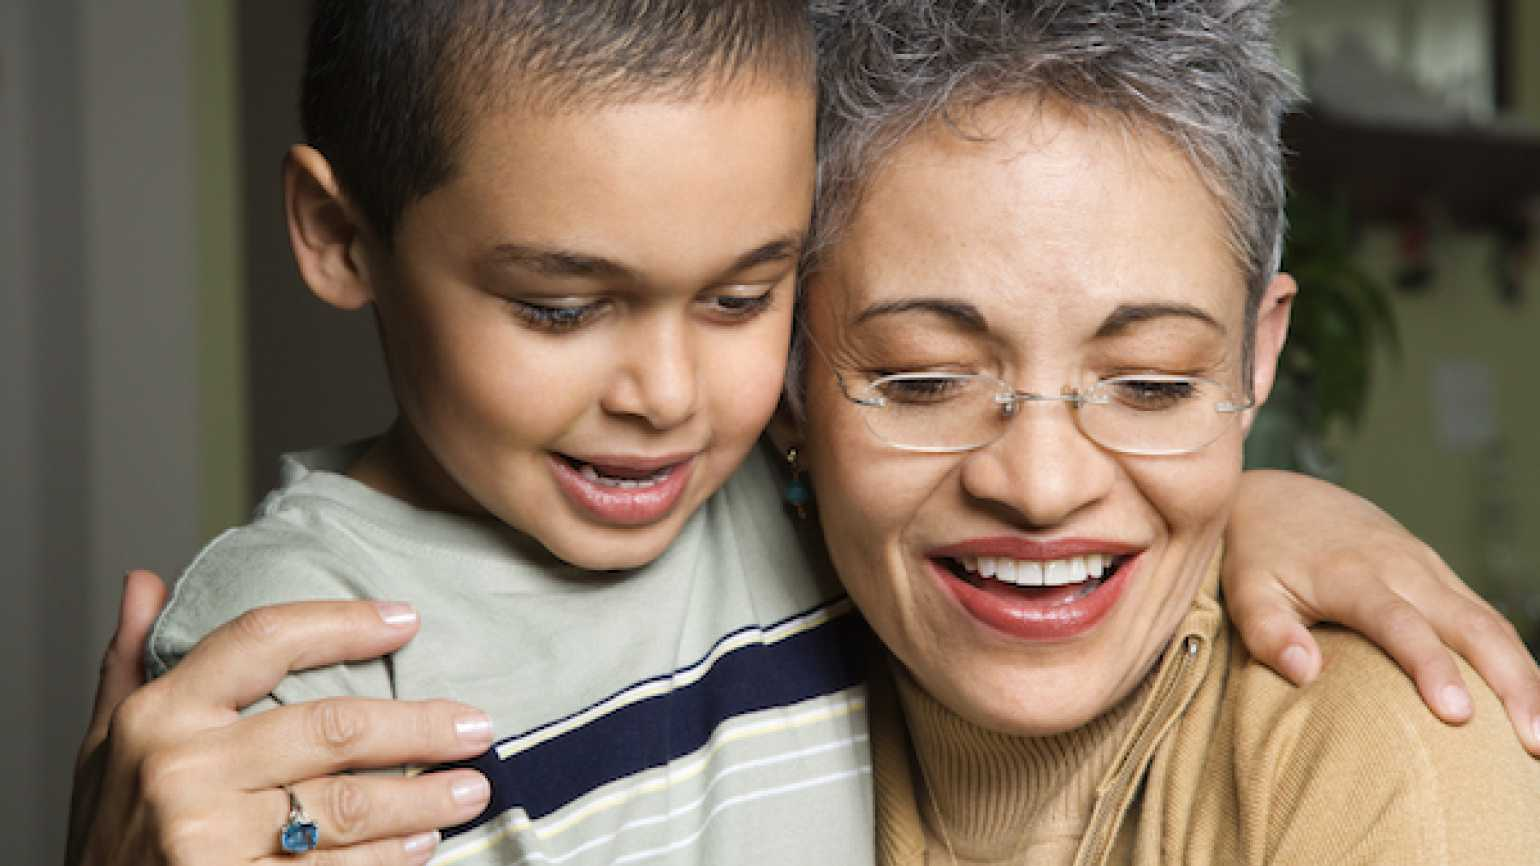 A grandmother is celebrated by how she touched the lives of others.